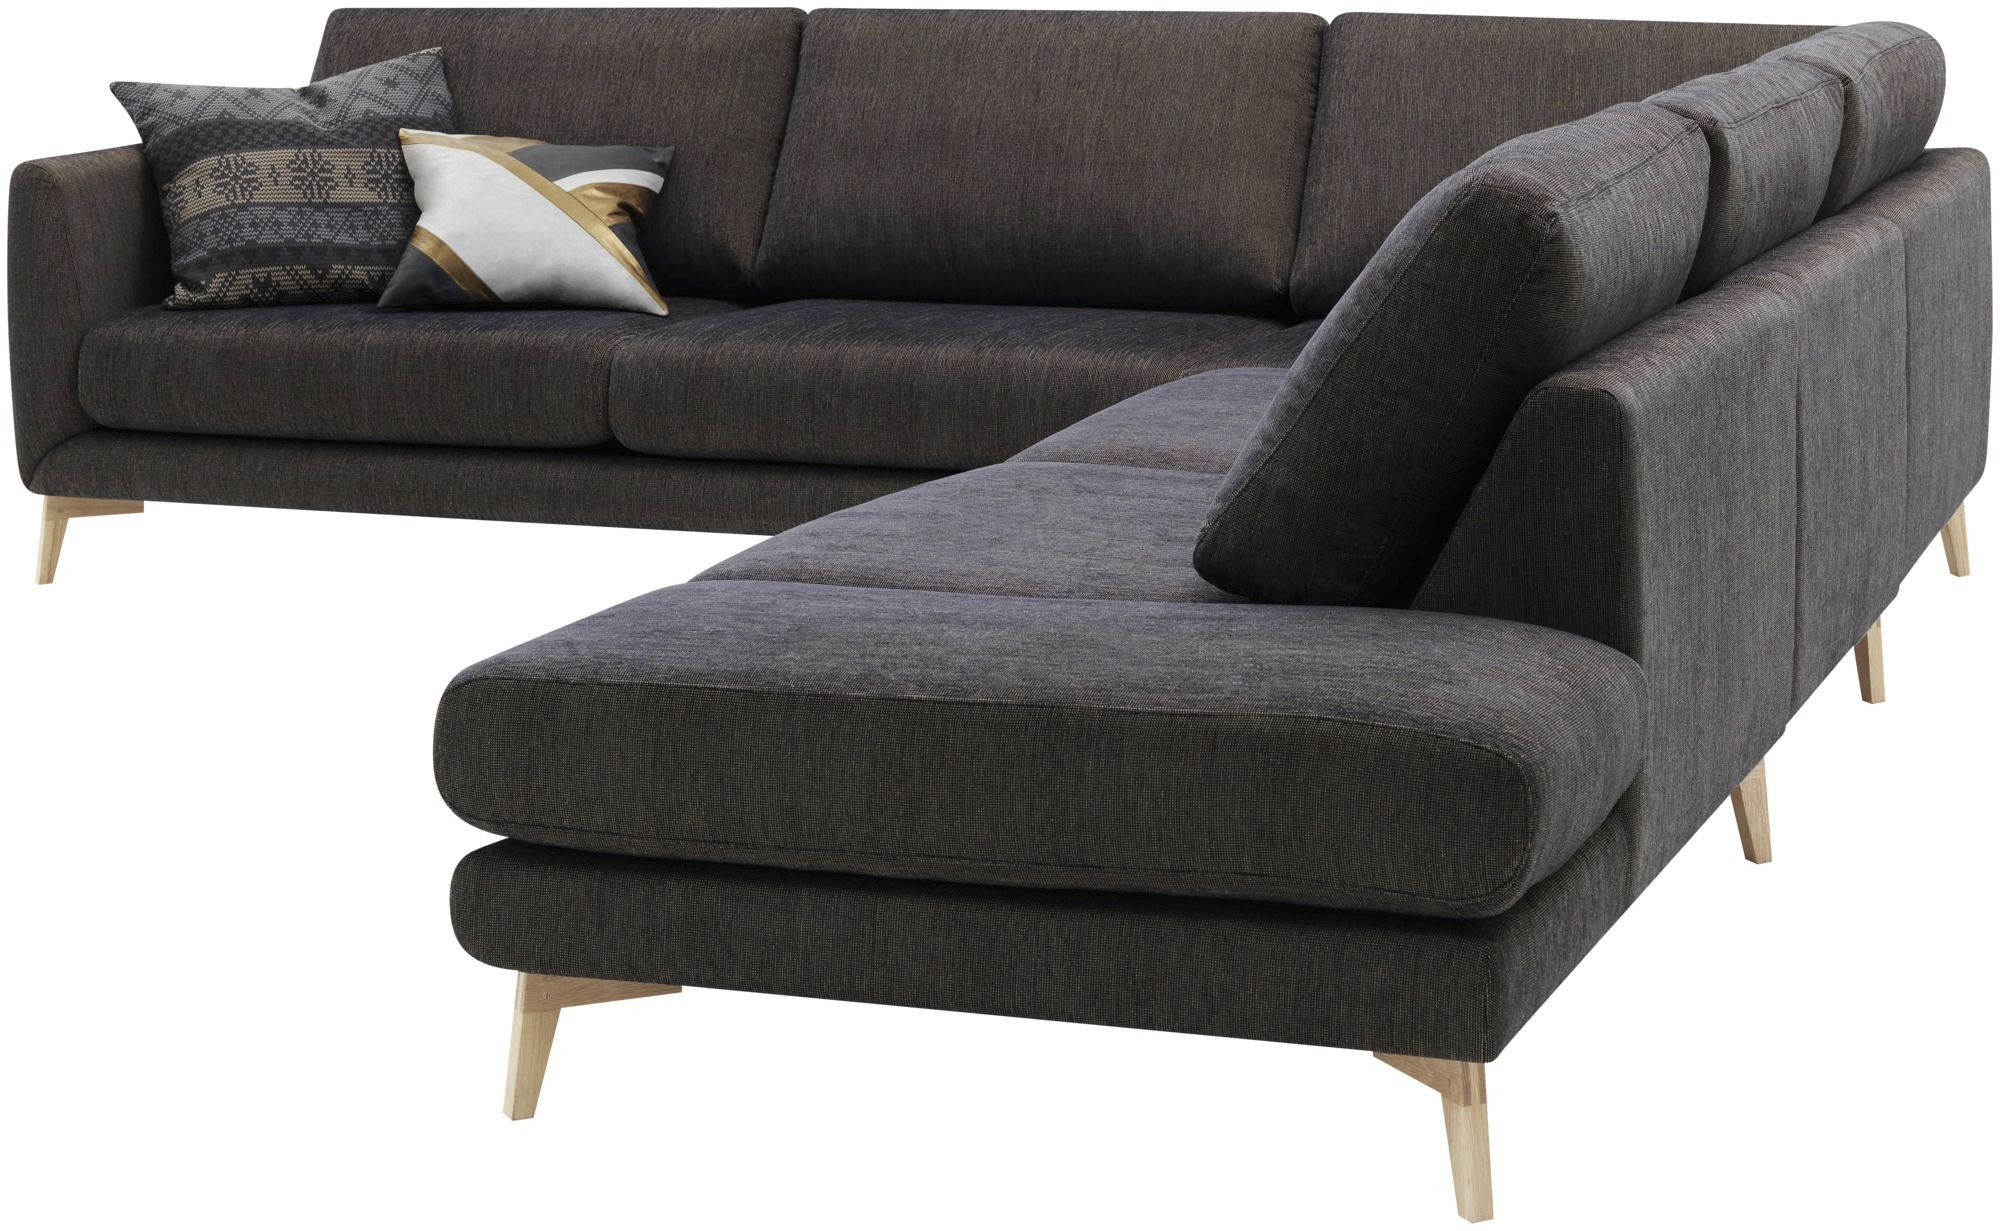 Corner Sofa Modular Contemporary Leather Fargo Anders Regarding Modular Corner Sofas (Image 6 of 15)